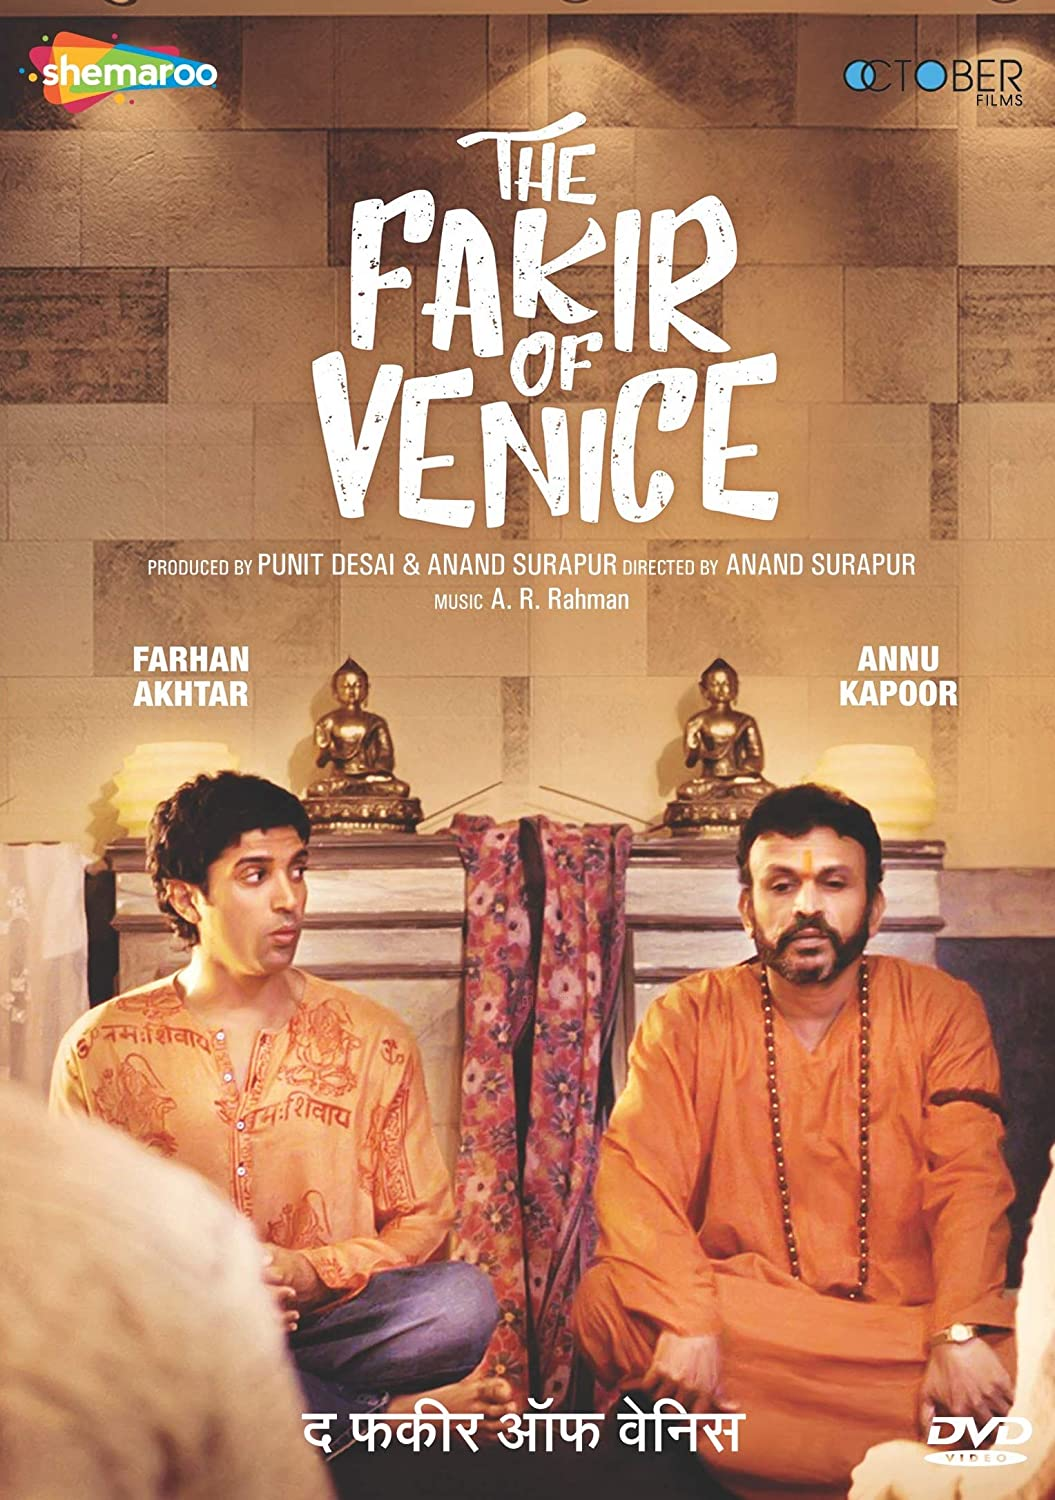 Amazon.in: Buy The Fakir of Venice DVD, Blu-ray Online at Best ...